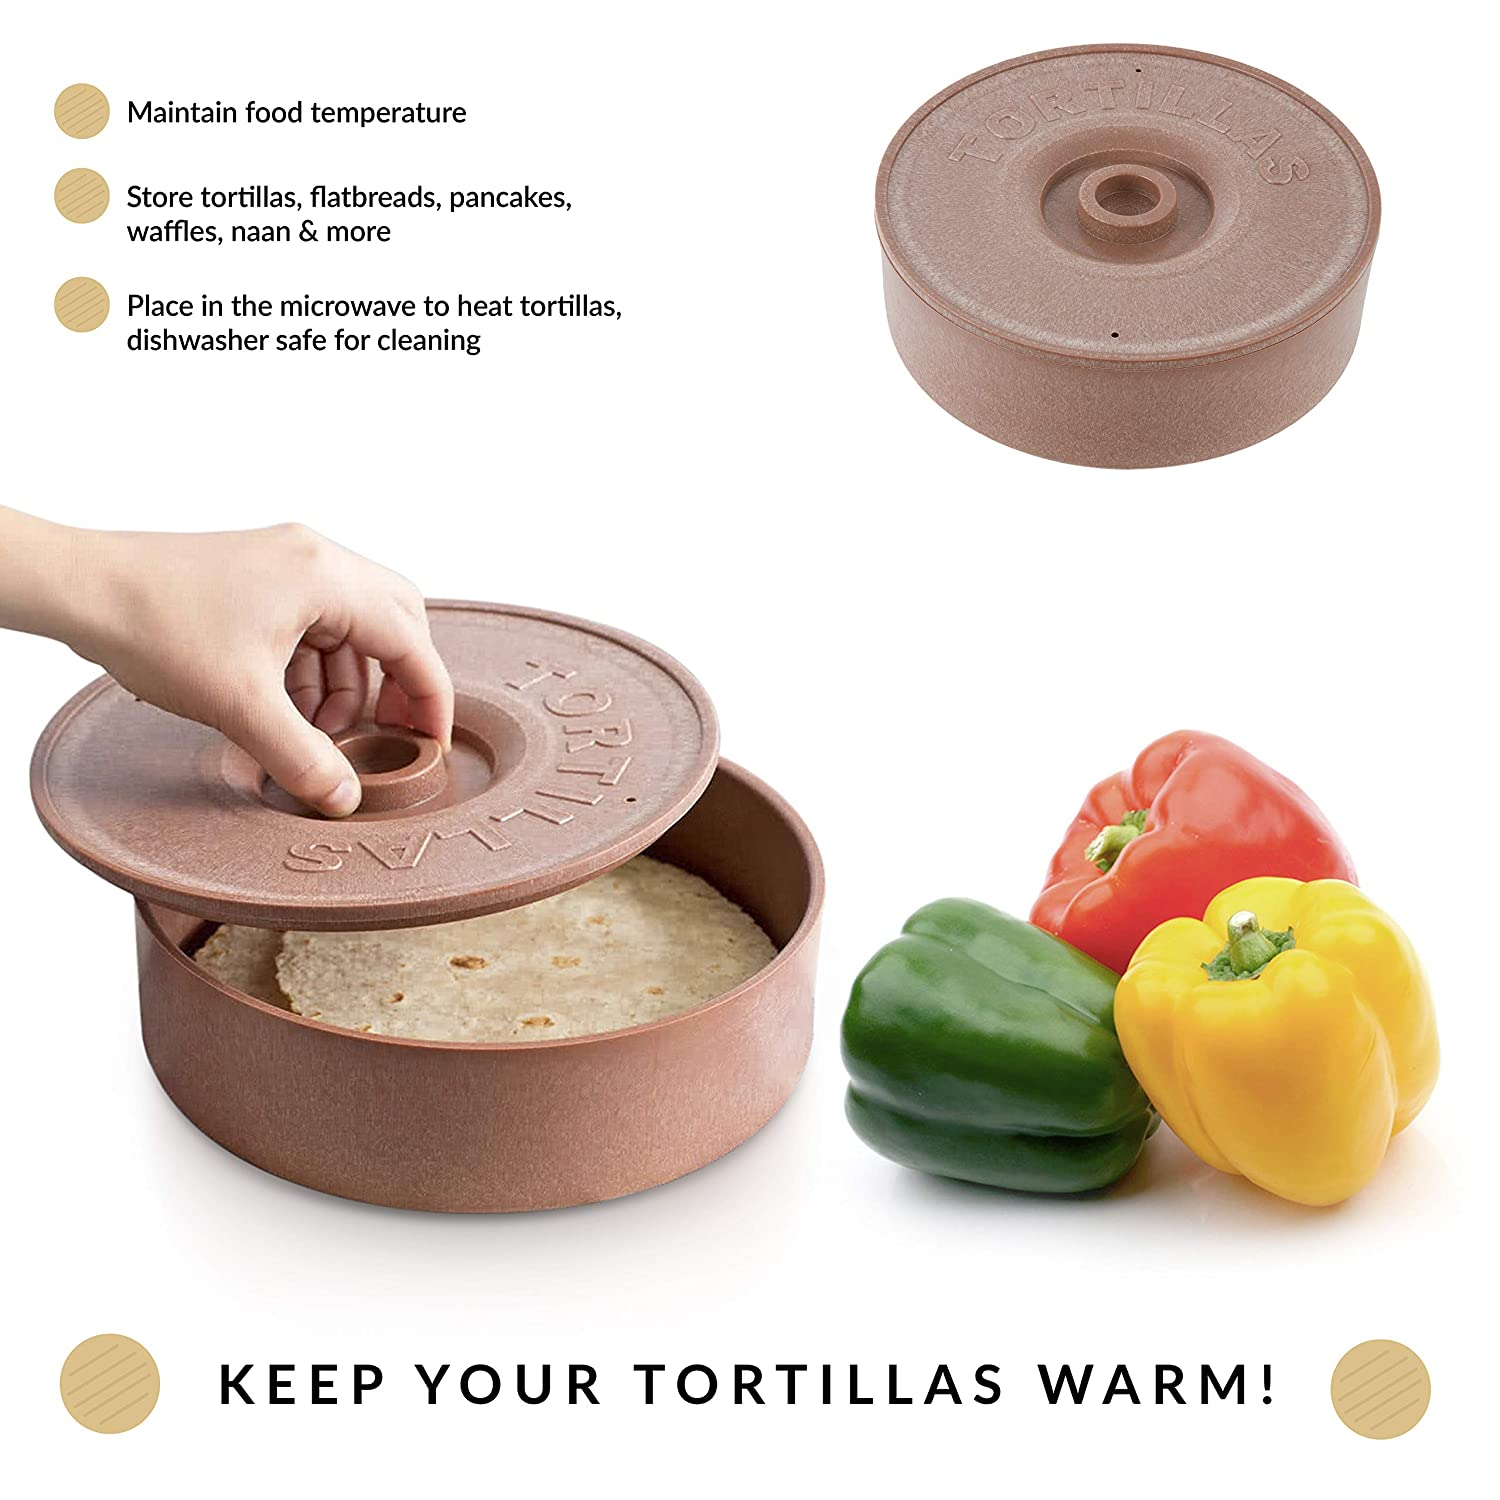 Taco Stand//Storage Newbury Home Tortilla Warmer and Taco Stand Combo: 2PK Stainless Steel Holders Perfect Gift Idea Microwave Tortillas 1 BPA Free Tortilla Keeper With Lid